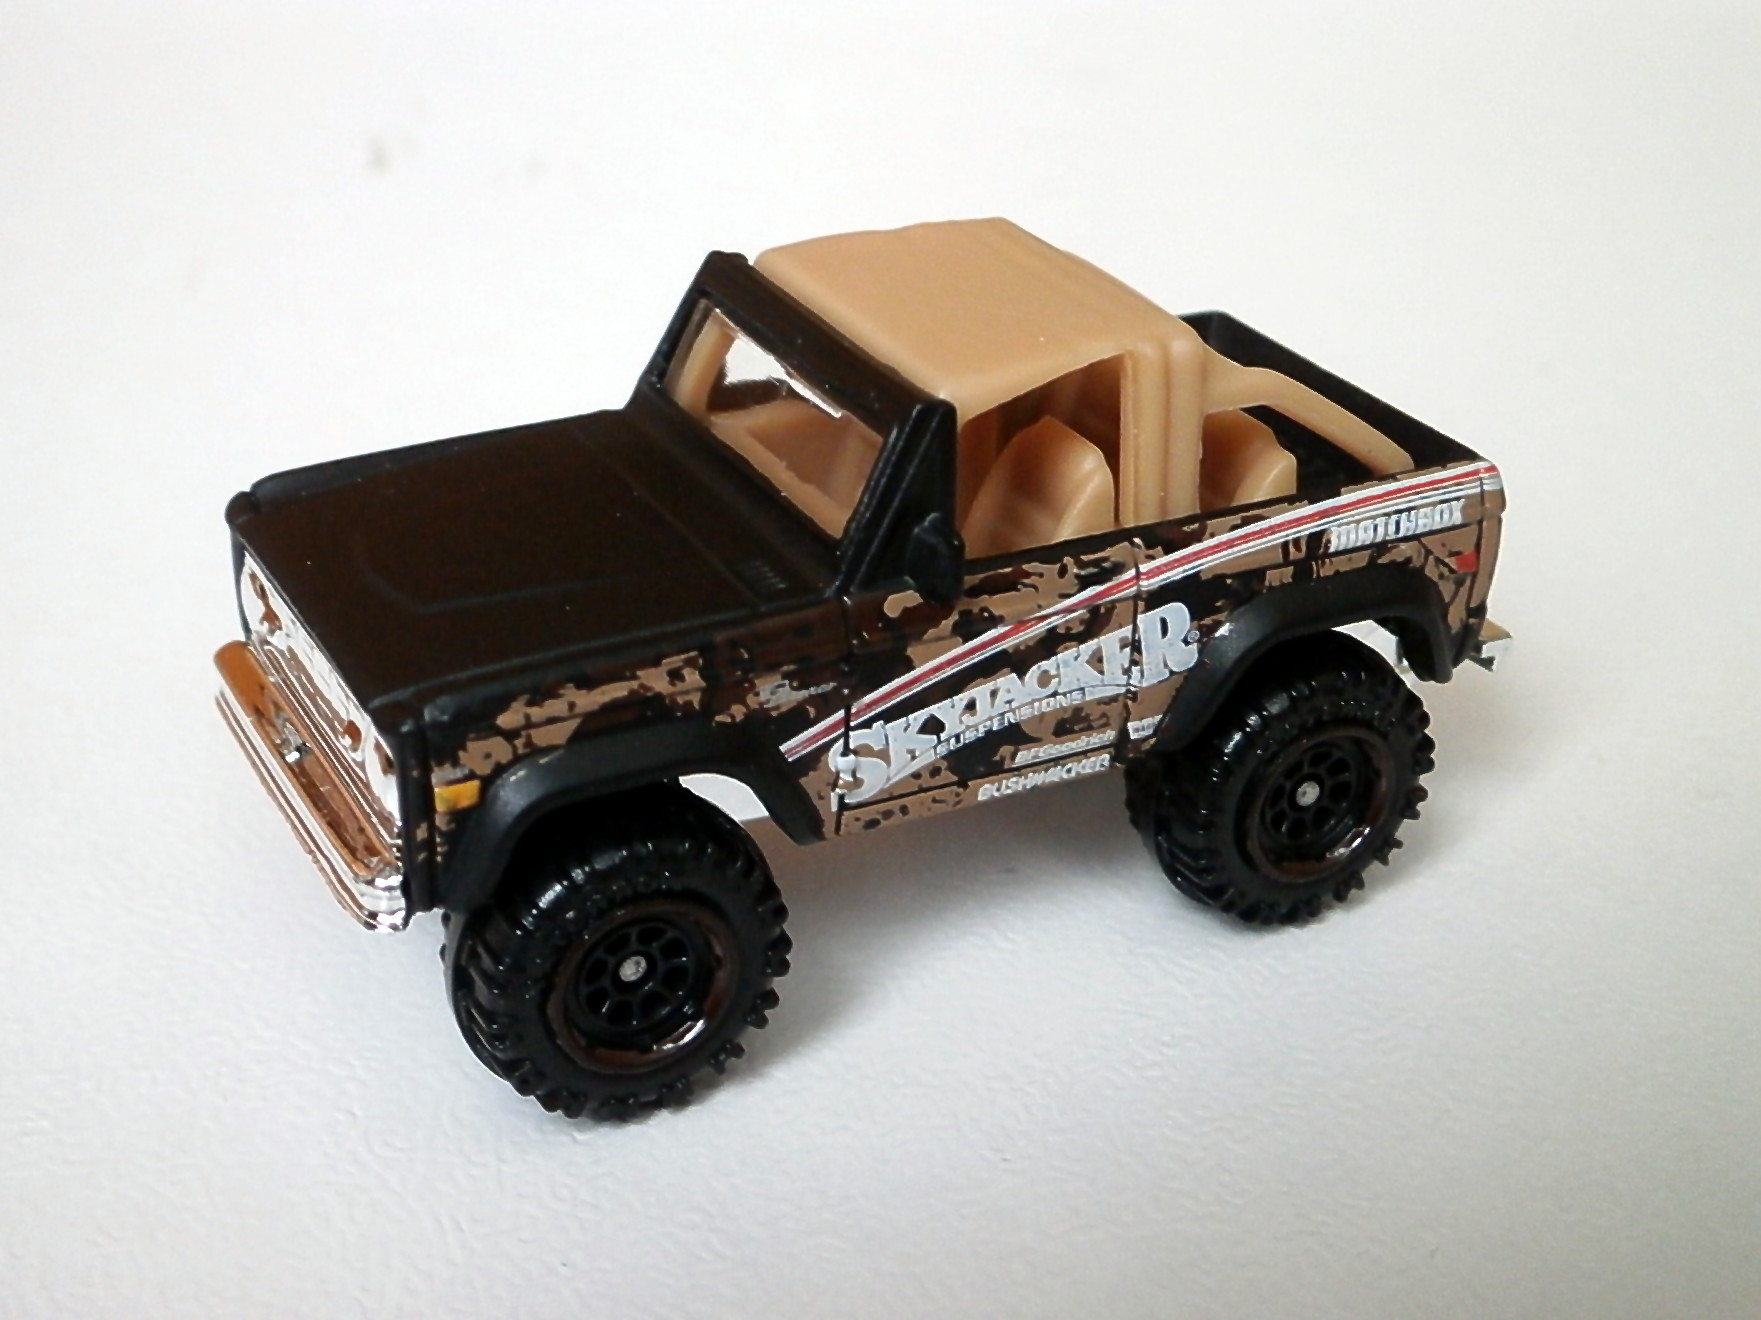 Image Ford Bronco 4x4 Skyjacker 2018 Matchbox Cars Wiki 1970 Full Size